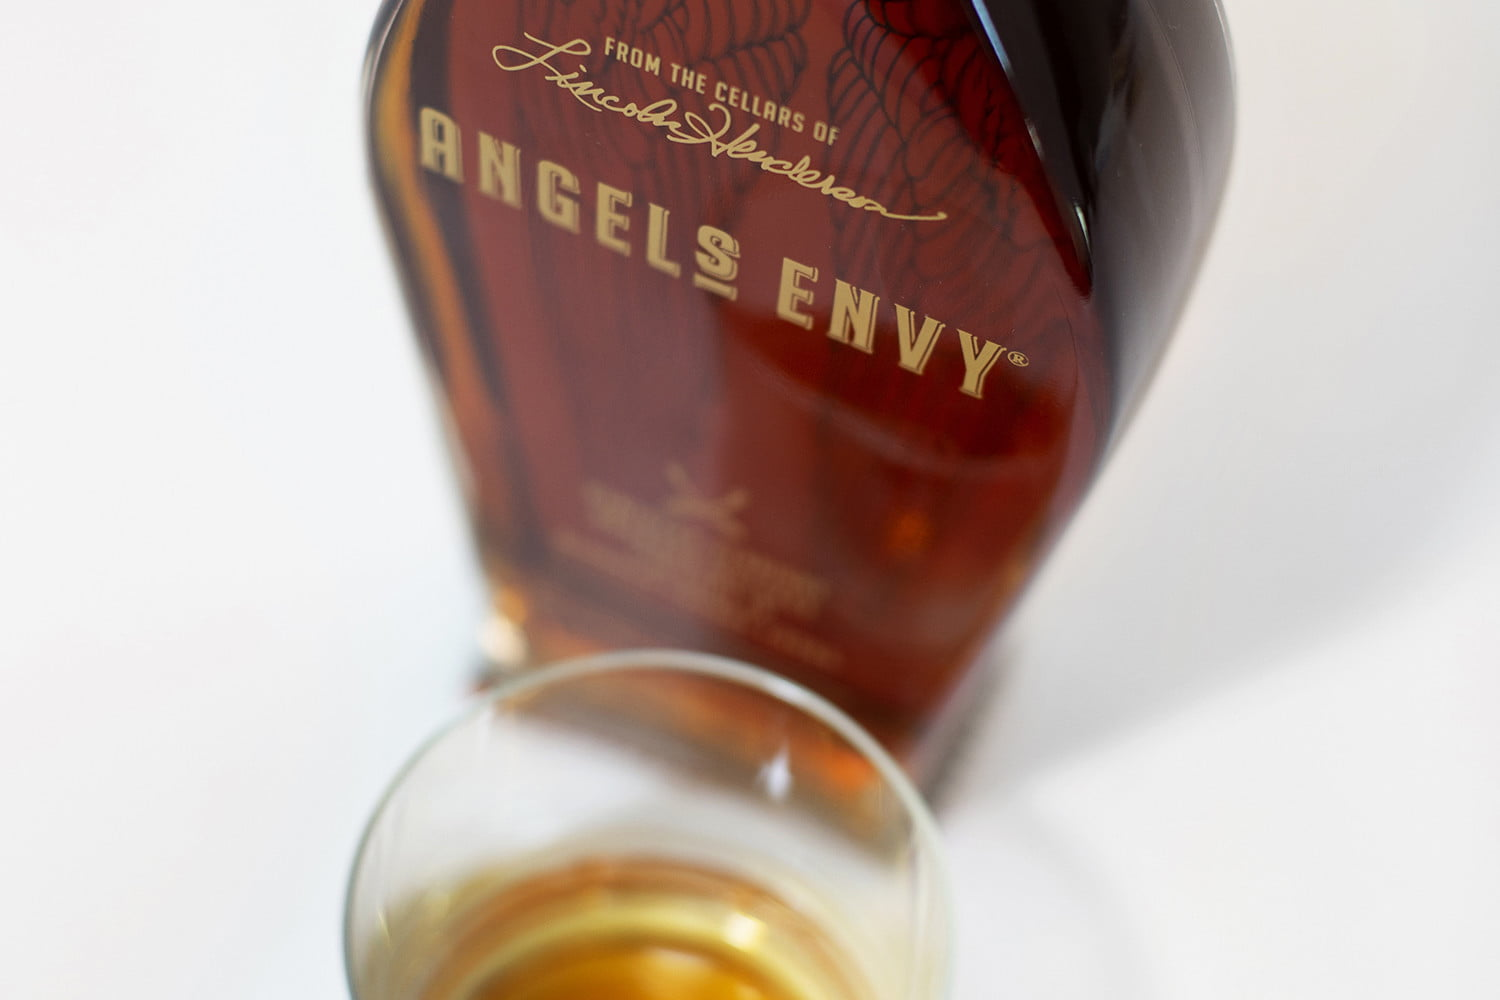 angels-envy-kentucky-straight-bourbon-whiskey-finished-in-oloroso-sherry-casks-feature